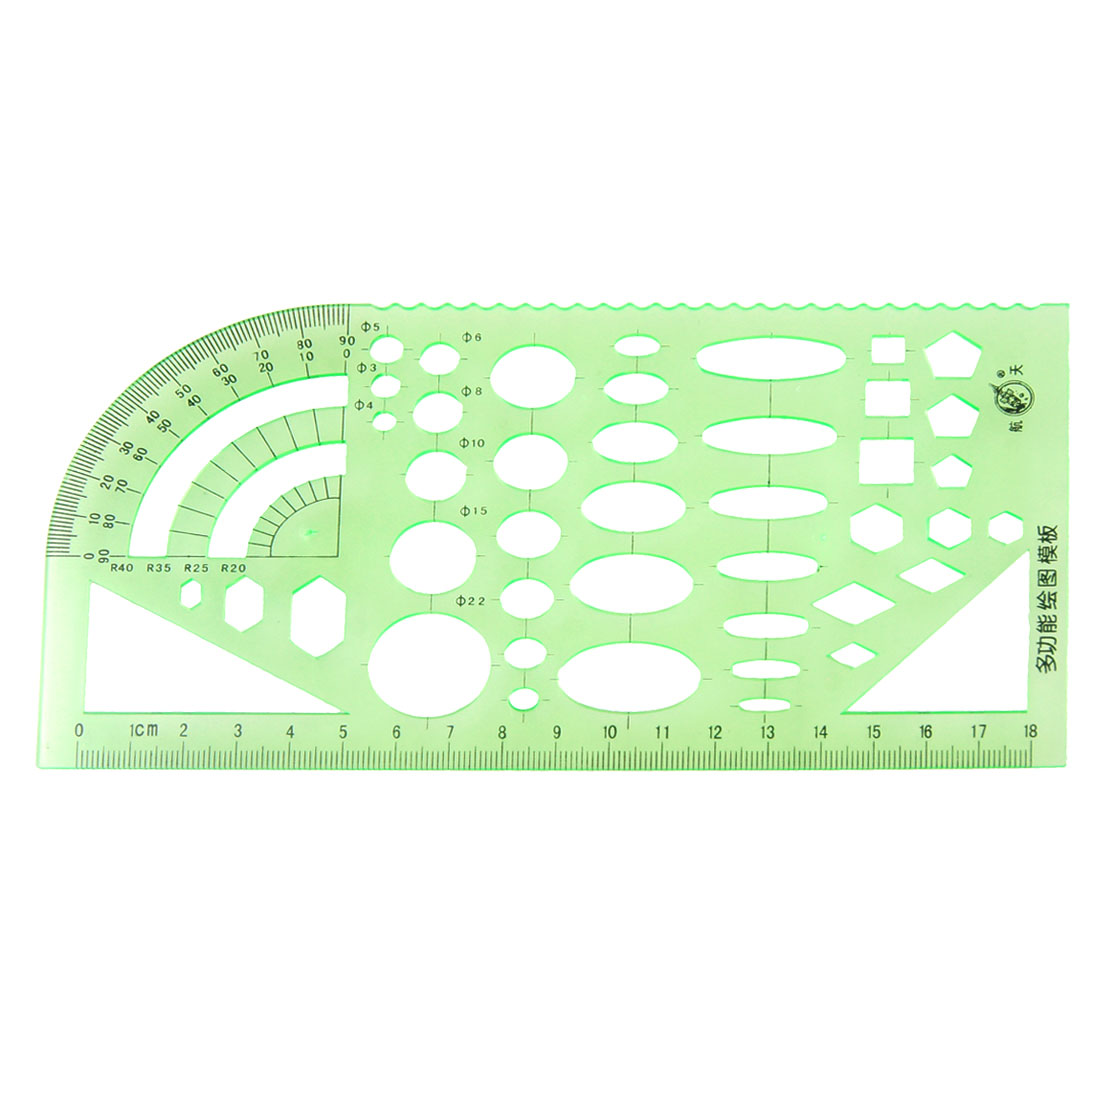 Green Educational Stationery Measuring Template Ruler Guide for Students